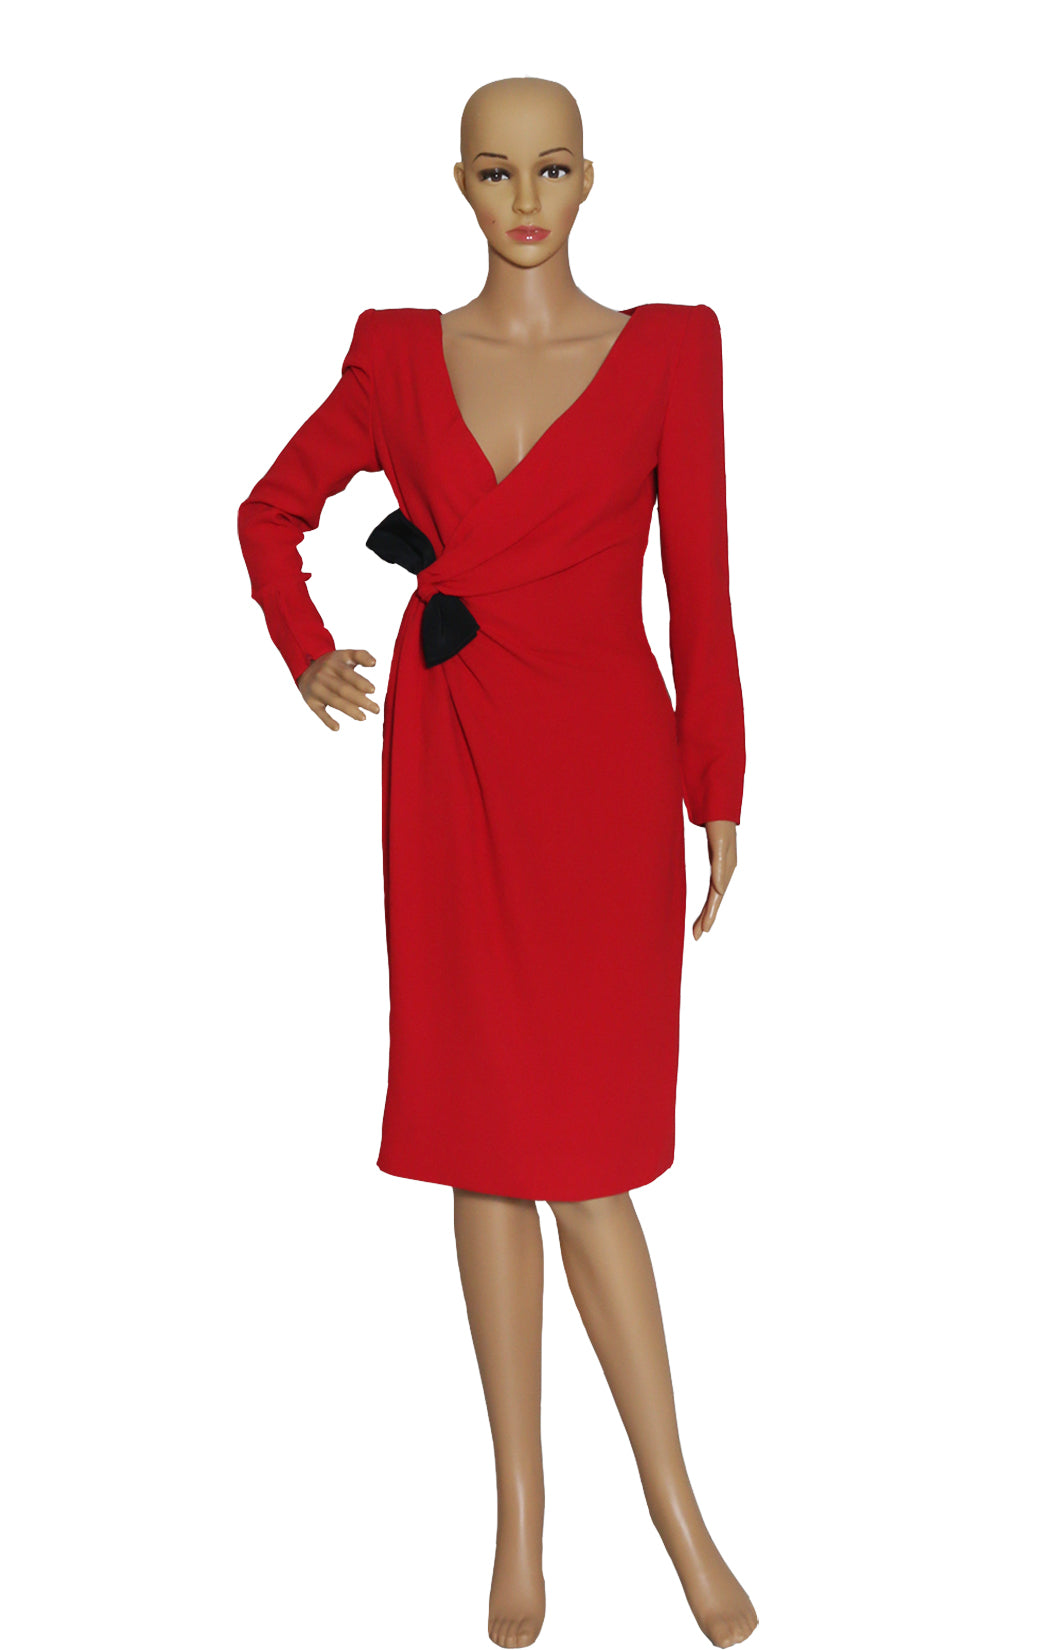 Front view of VALENTINO (Vintage) Red Dress No Tag, Sized Like US 6